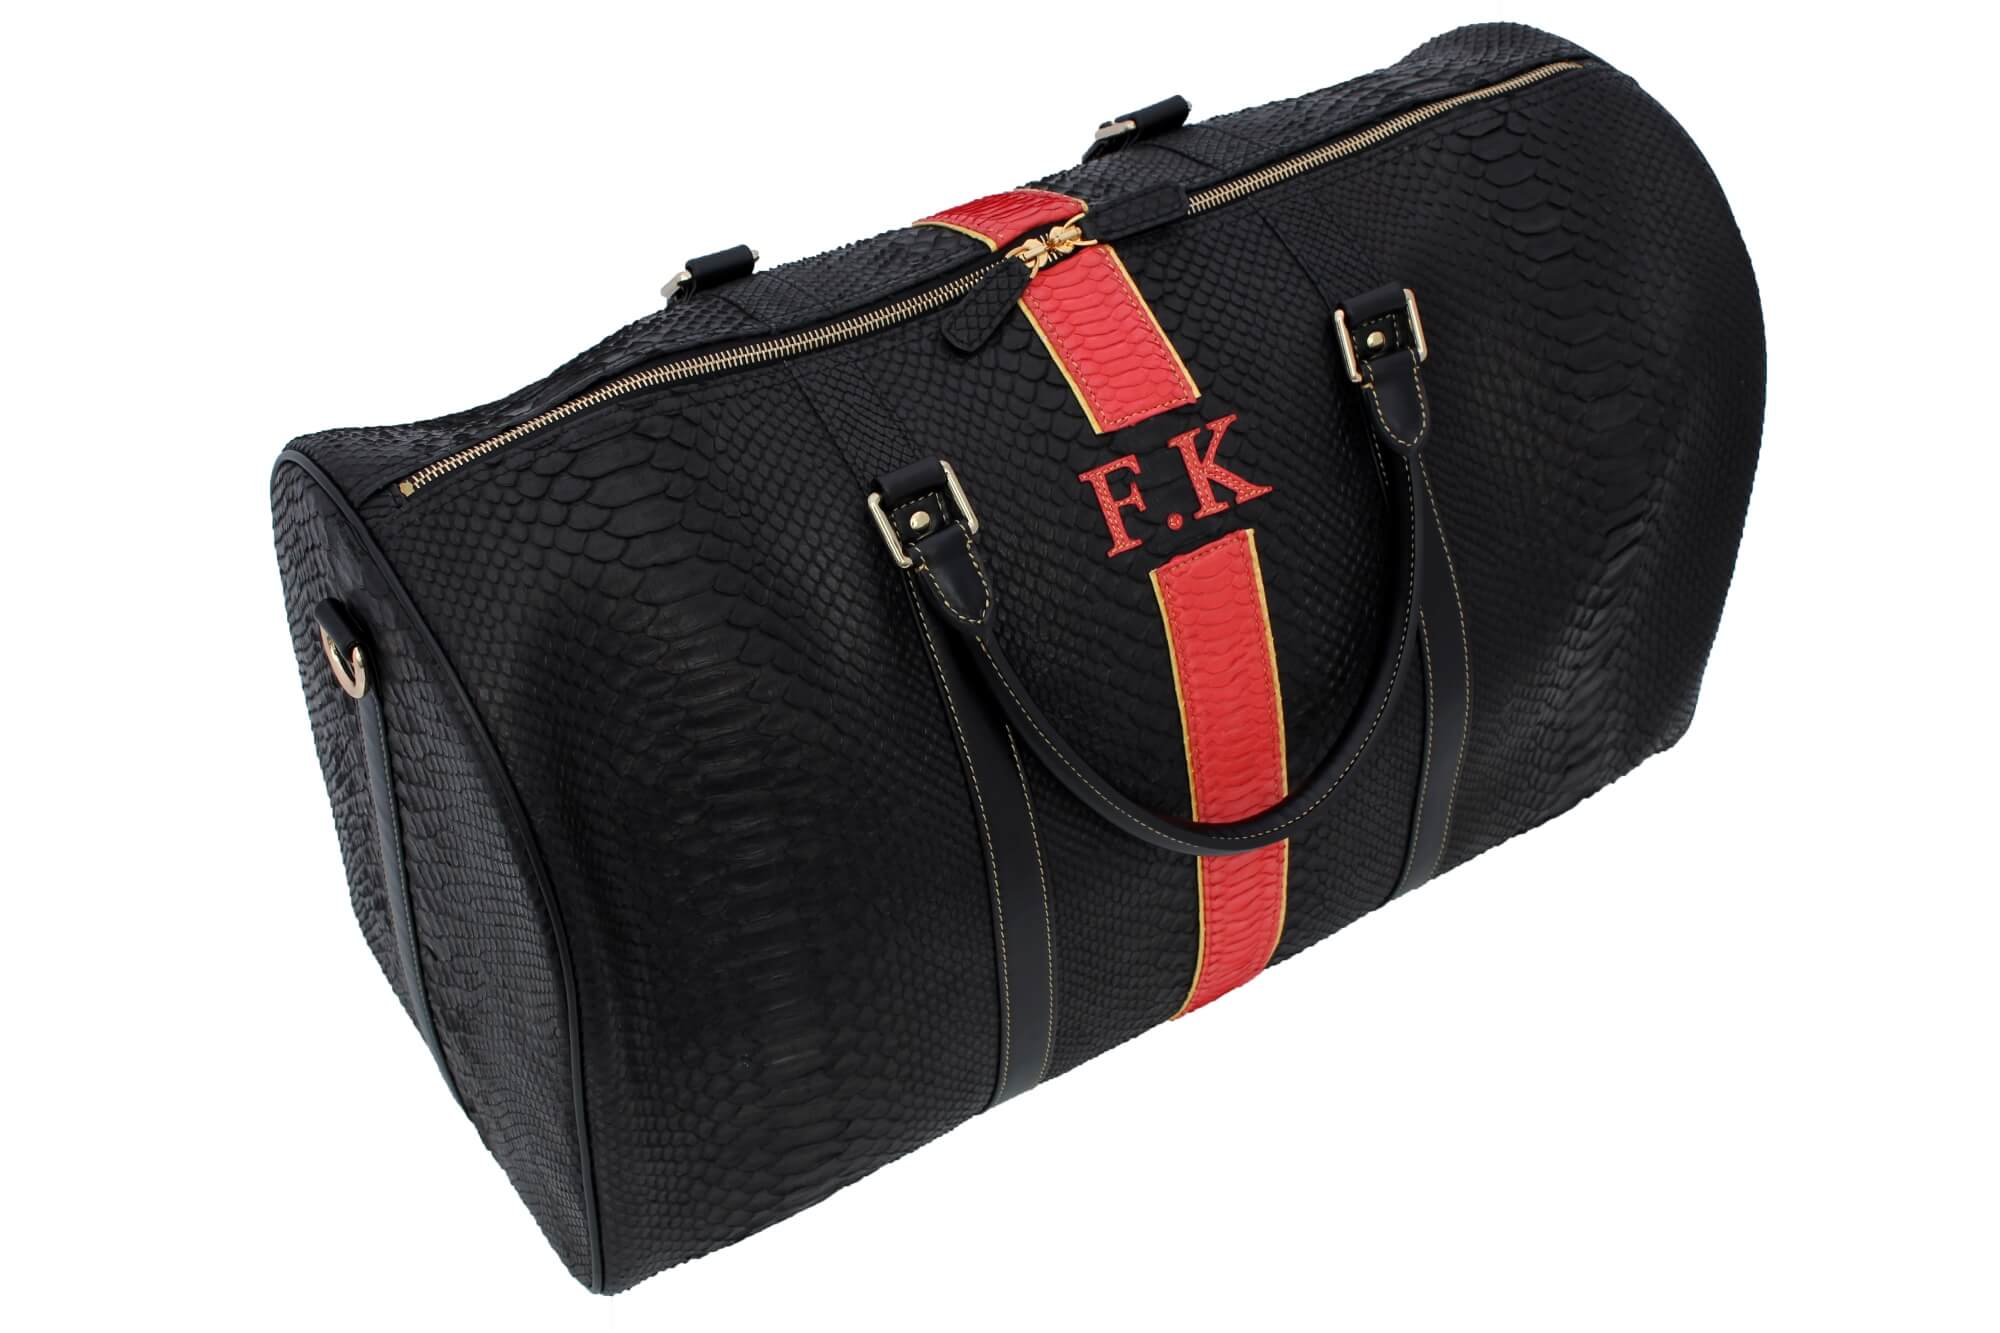 FK Initialed Duffle Bag